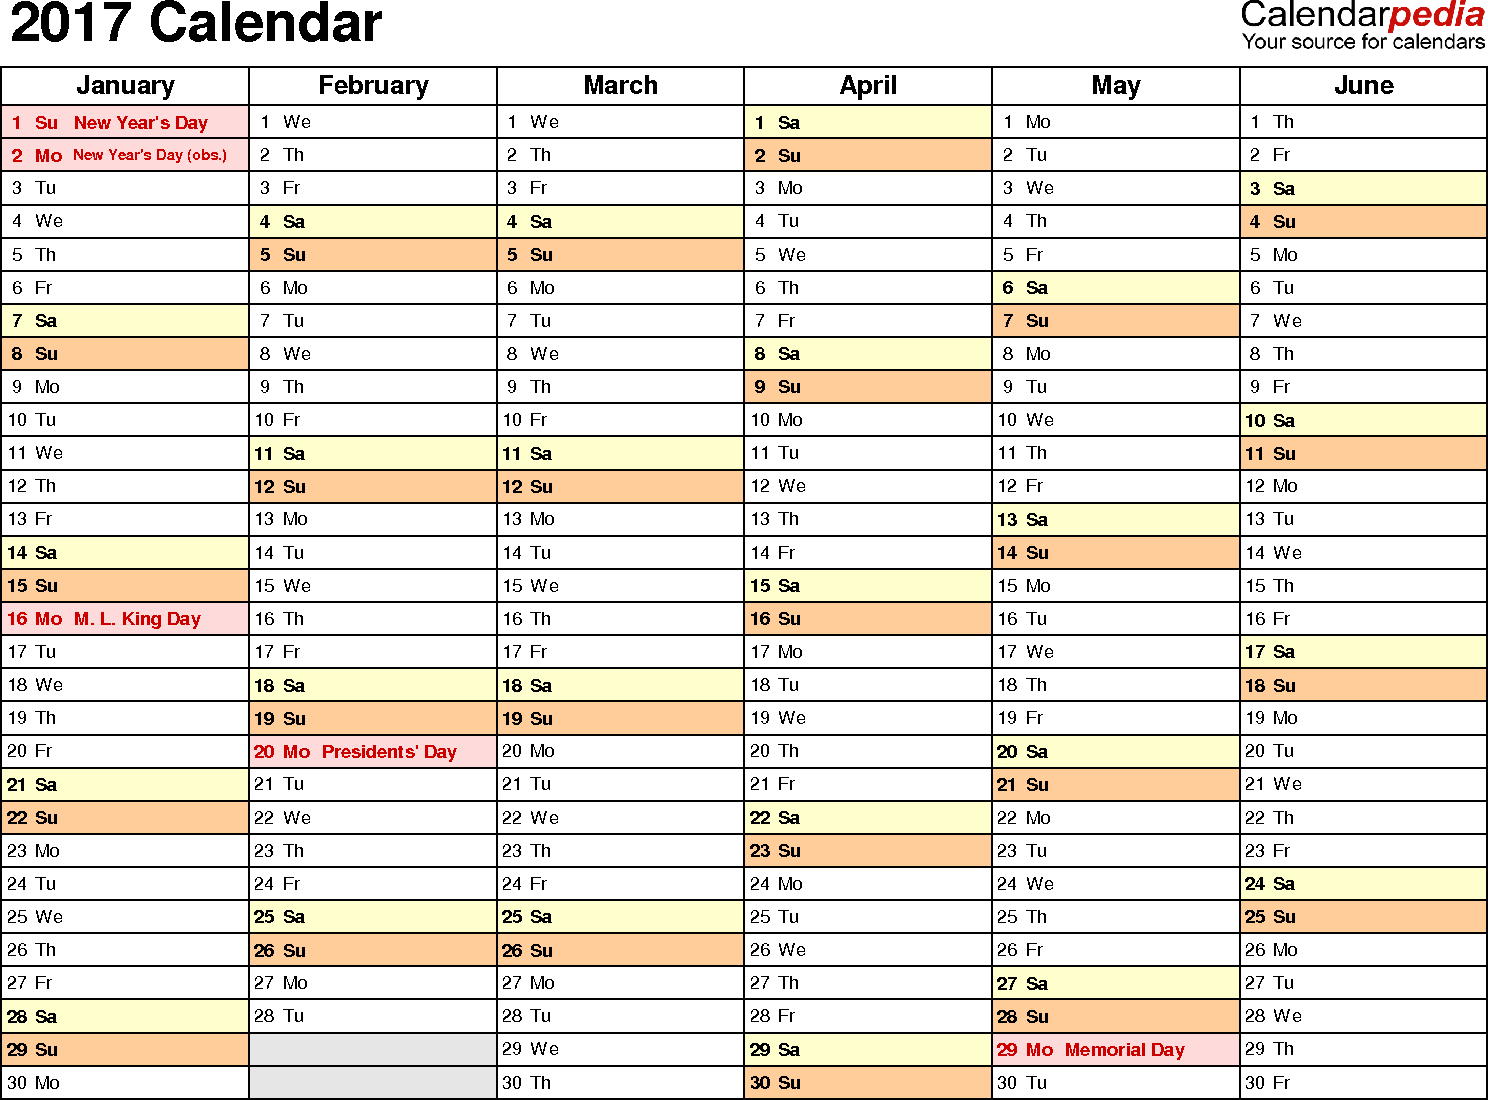 Ediblewildsus  Prepossessing  Calendar  Download  Free Printable Excel Templates Xls With Remarkable Template   Calendar For Excel Months Horizontally  Pages Landscape Orientation With Extraordinary Box Plot In Excel Also Find And Replace Excel In Addition Excel Project Plan Template And How To Write Macros In Excel As Well As Multiple In Excel Additionally Search Excel For Text From Calendarpediacom With Ediblewildsus  Remarkable  Calendar  Download  Free Printable Excel Templates Xls With Extraordinary Template   Calendar For Excel Months Horizontally  Pages Landscape Orientation And Prepossessing Box Plot In Excel Also Find And Replace Excel In Addition Excel Project Plan Template From Calendarpediacom